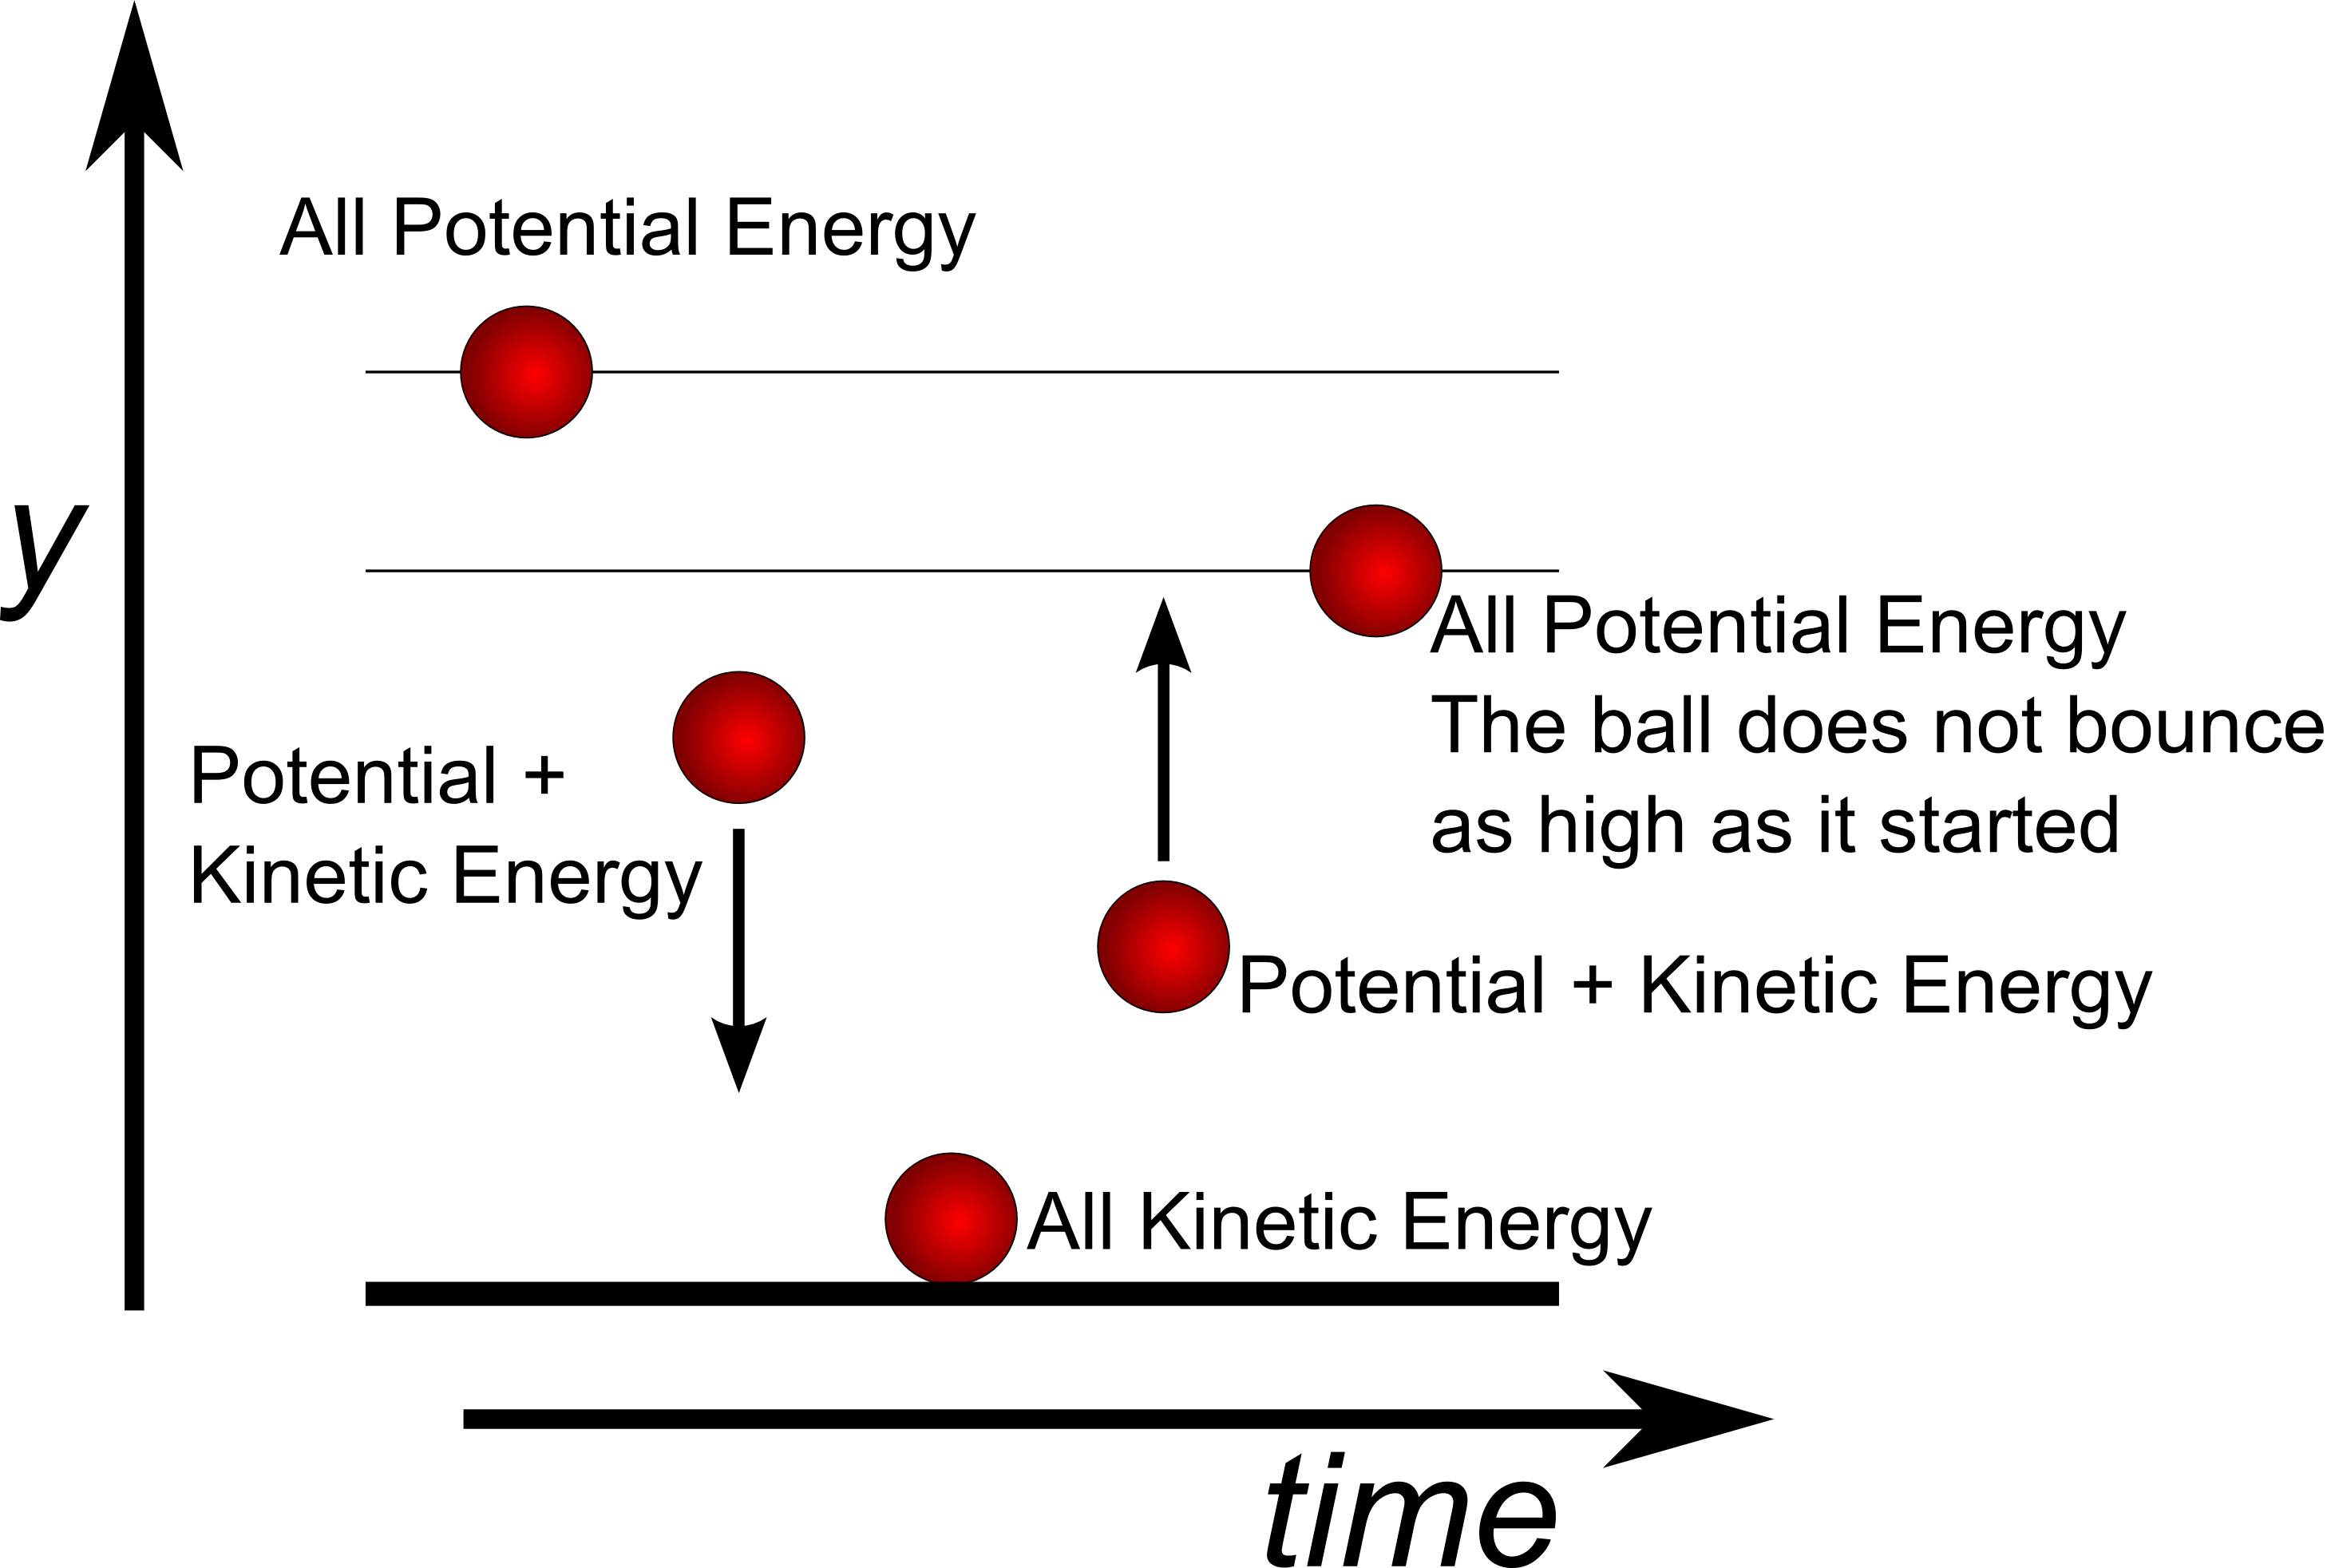 What Is The Equation Of Potential And Kinetic Energy